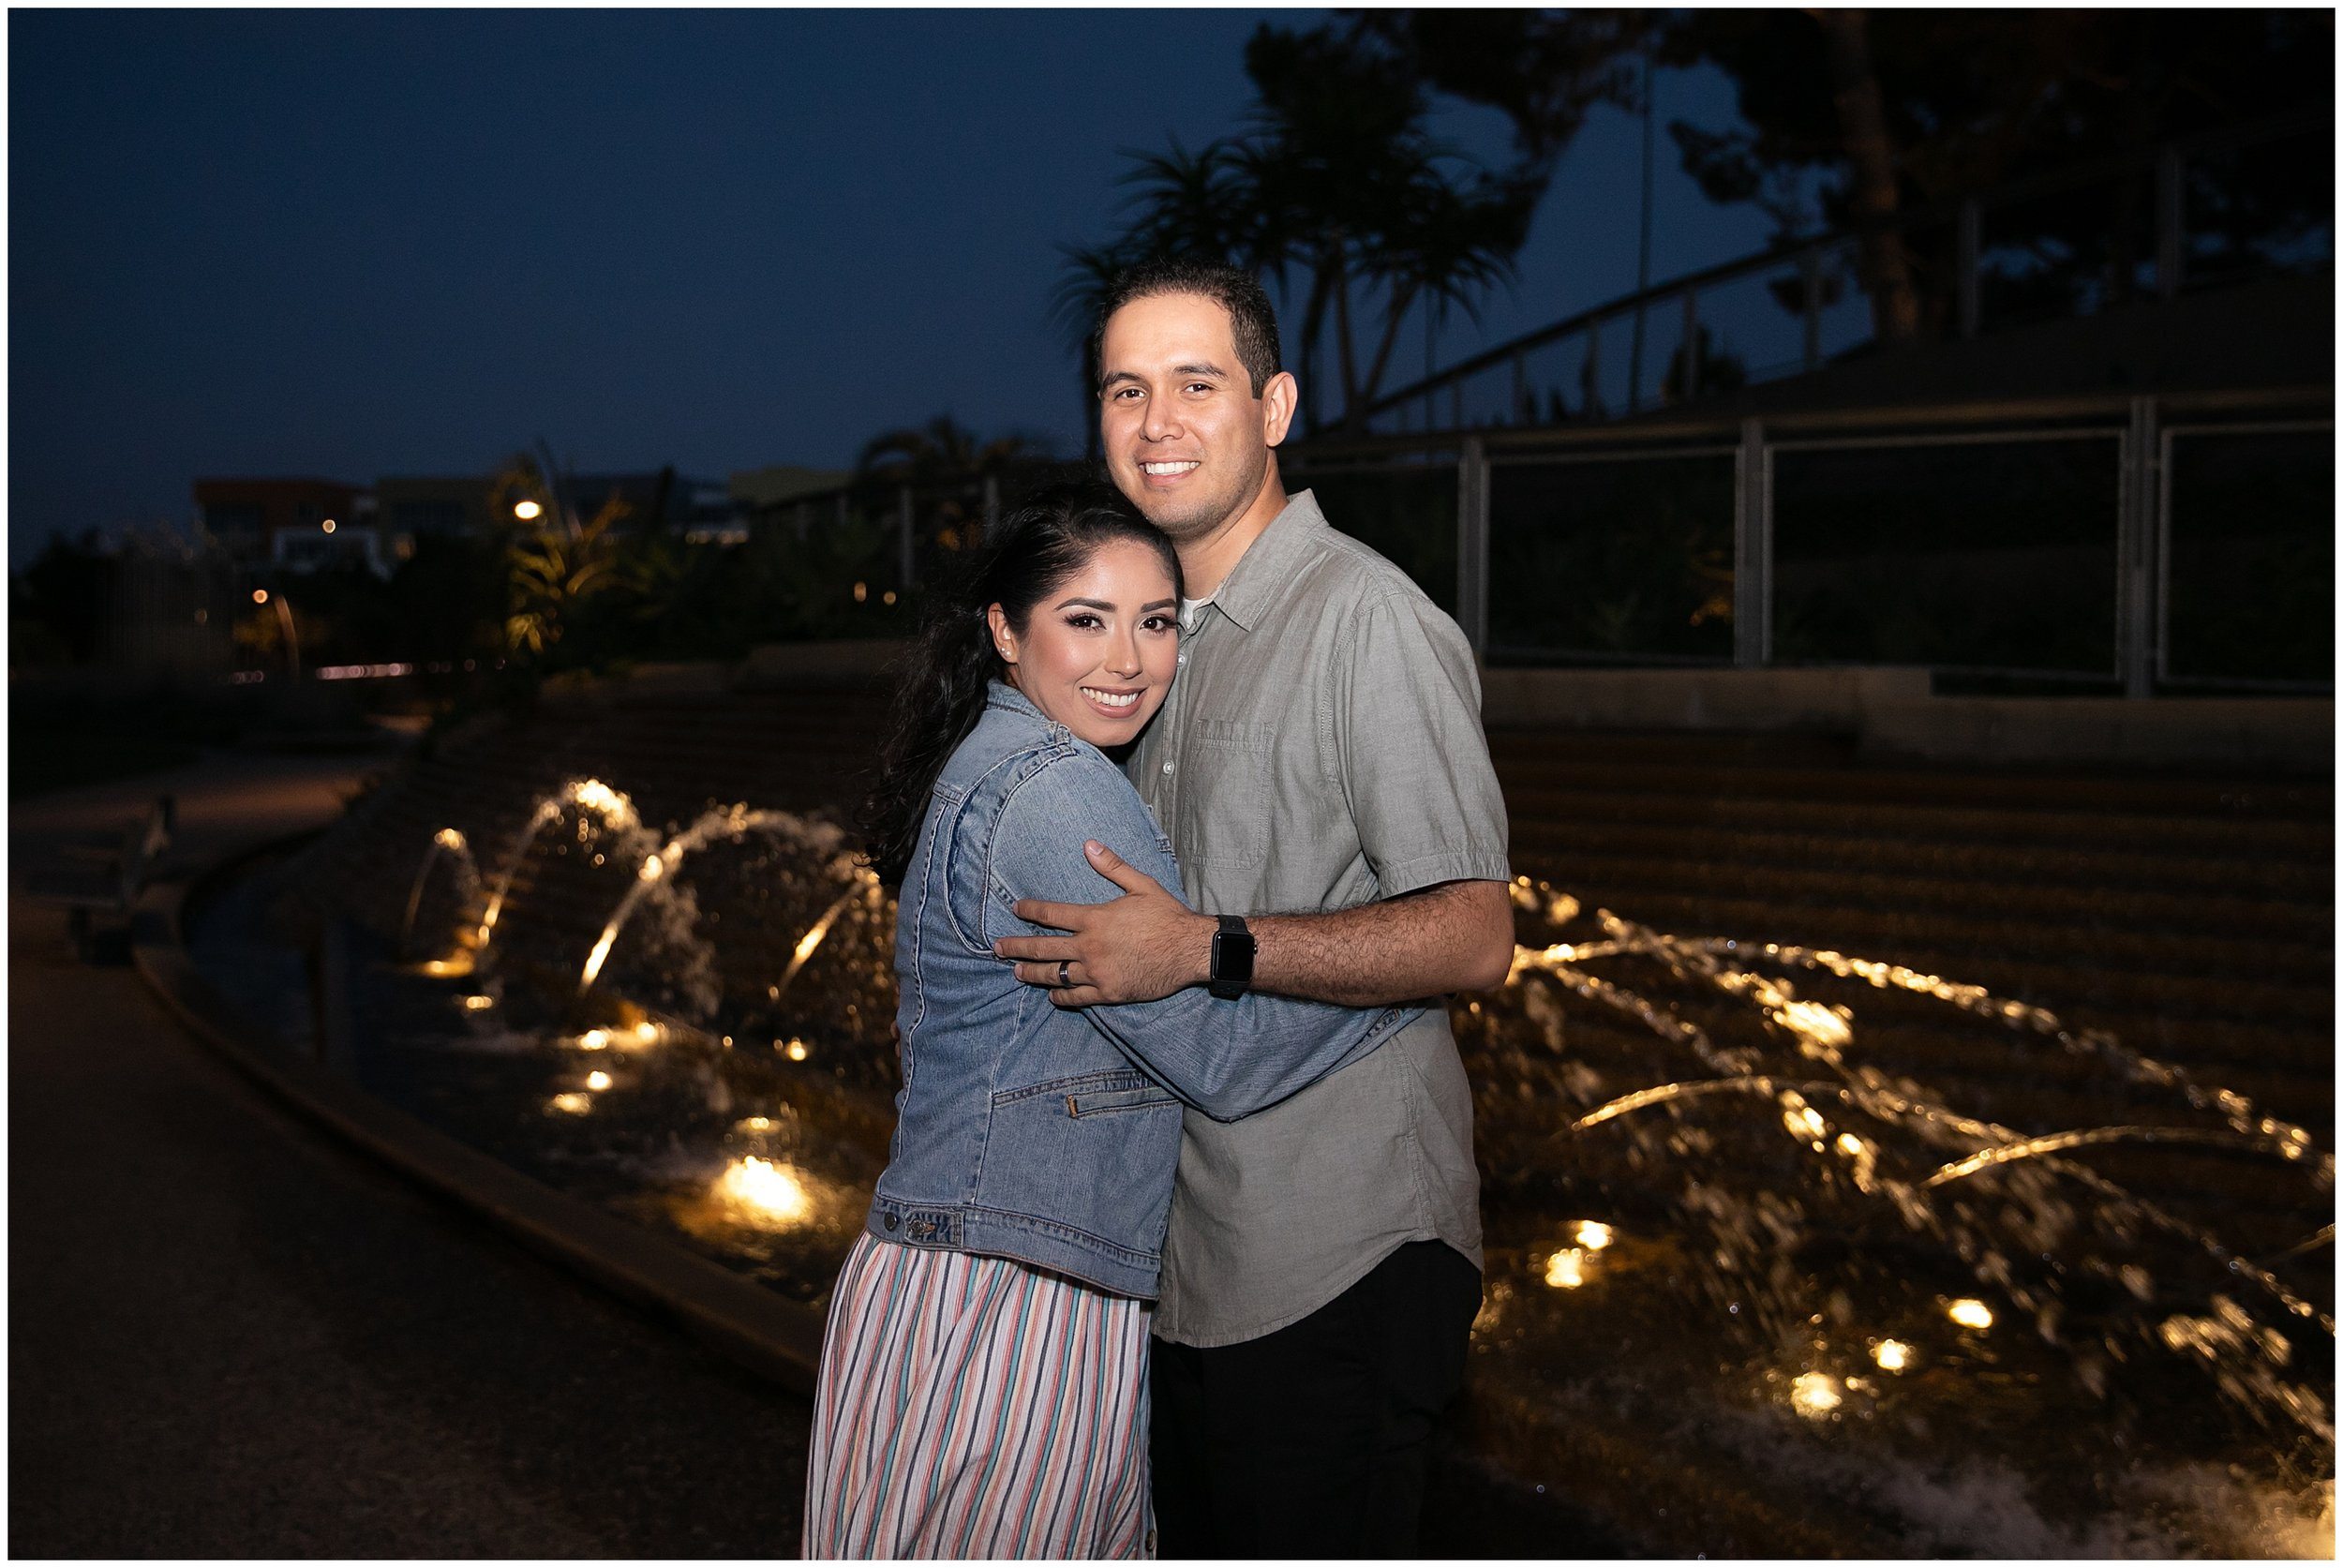 santa monica engagement-kellaphotography-laweddingphotographer_0059.jpg